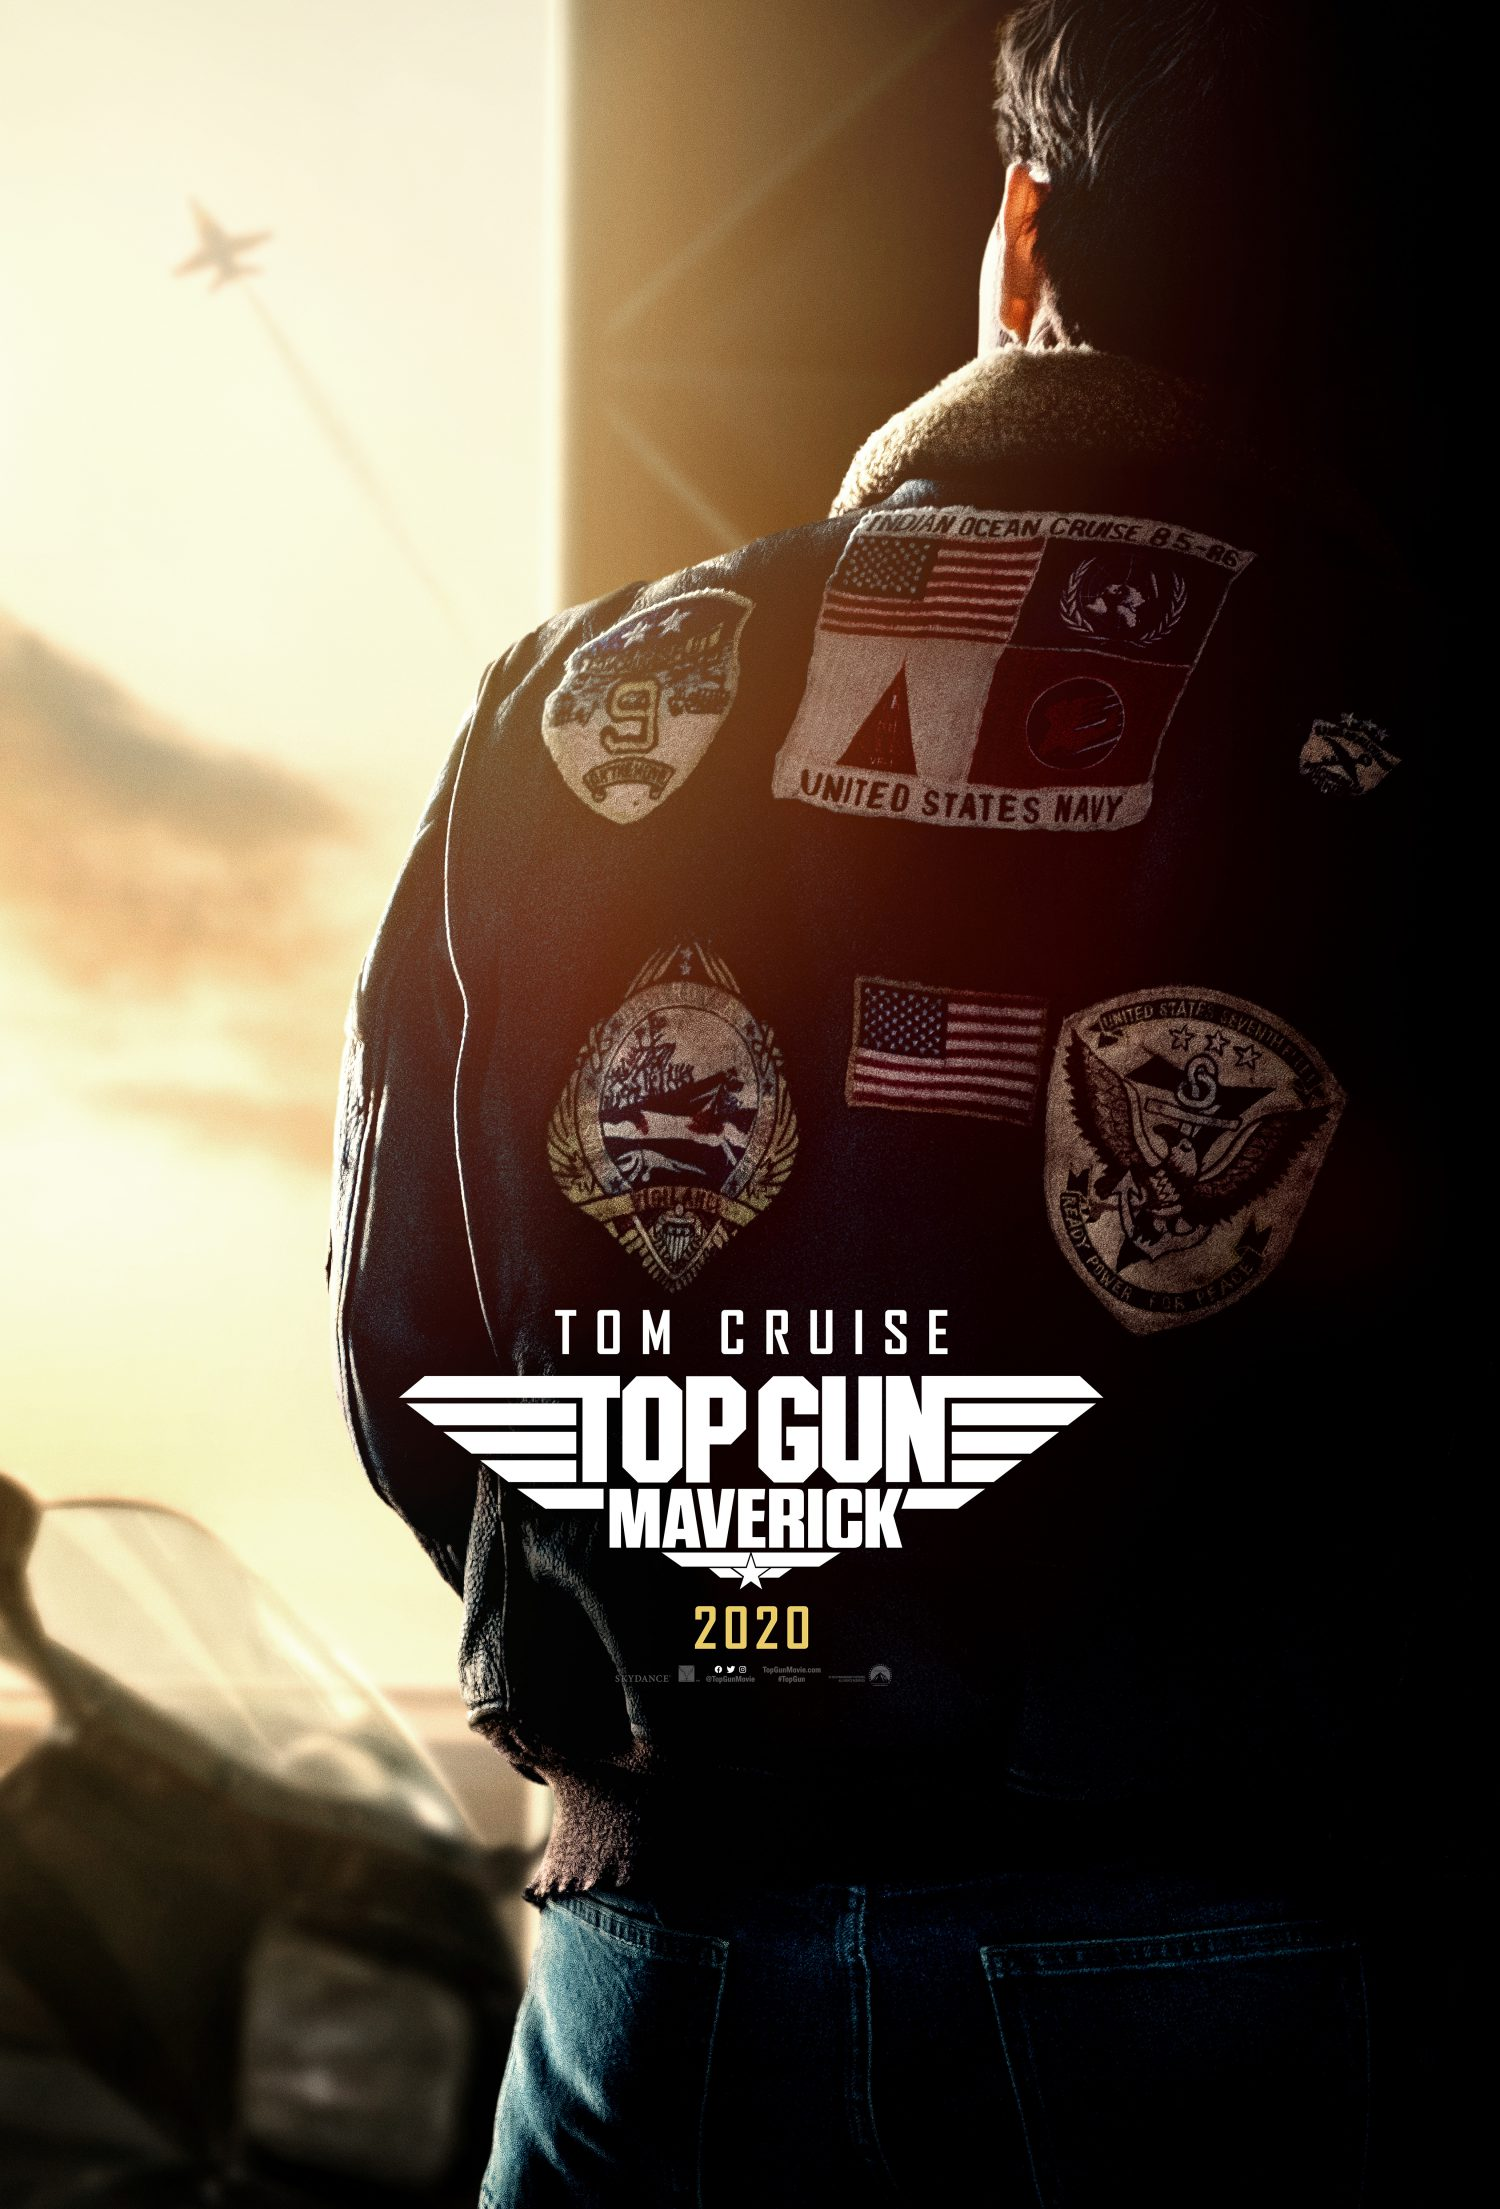 Tom Cruise is back as Maverick in Top Gun: Maverick.